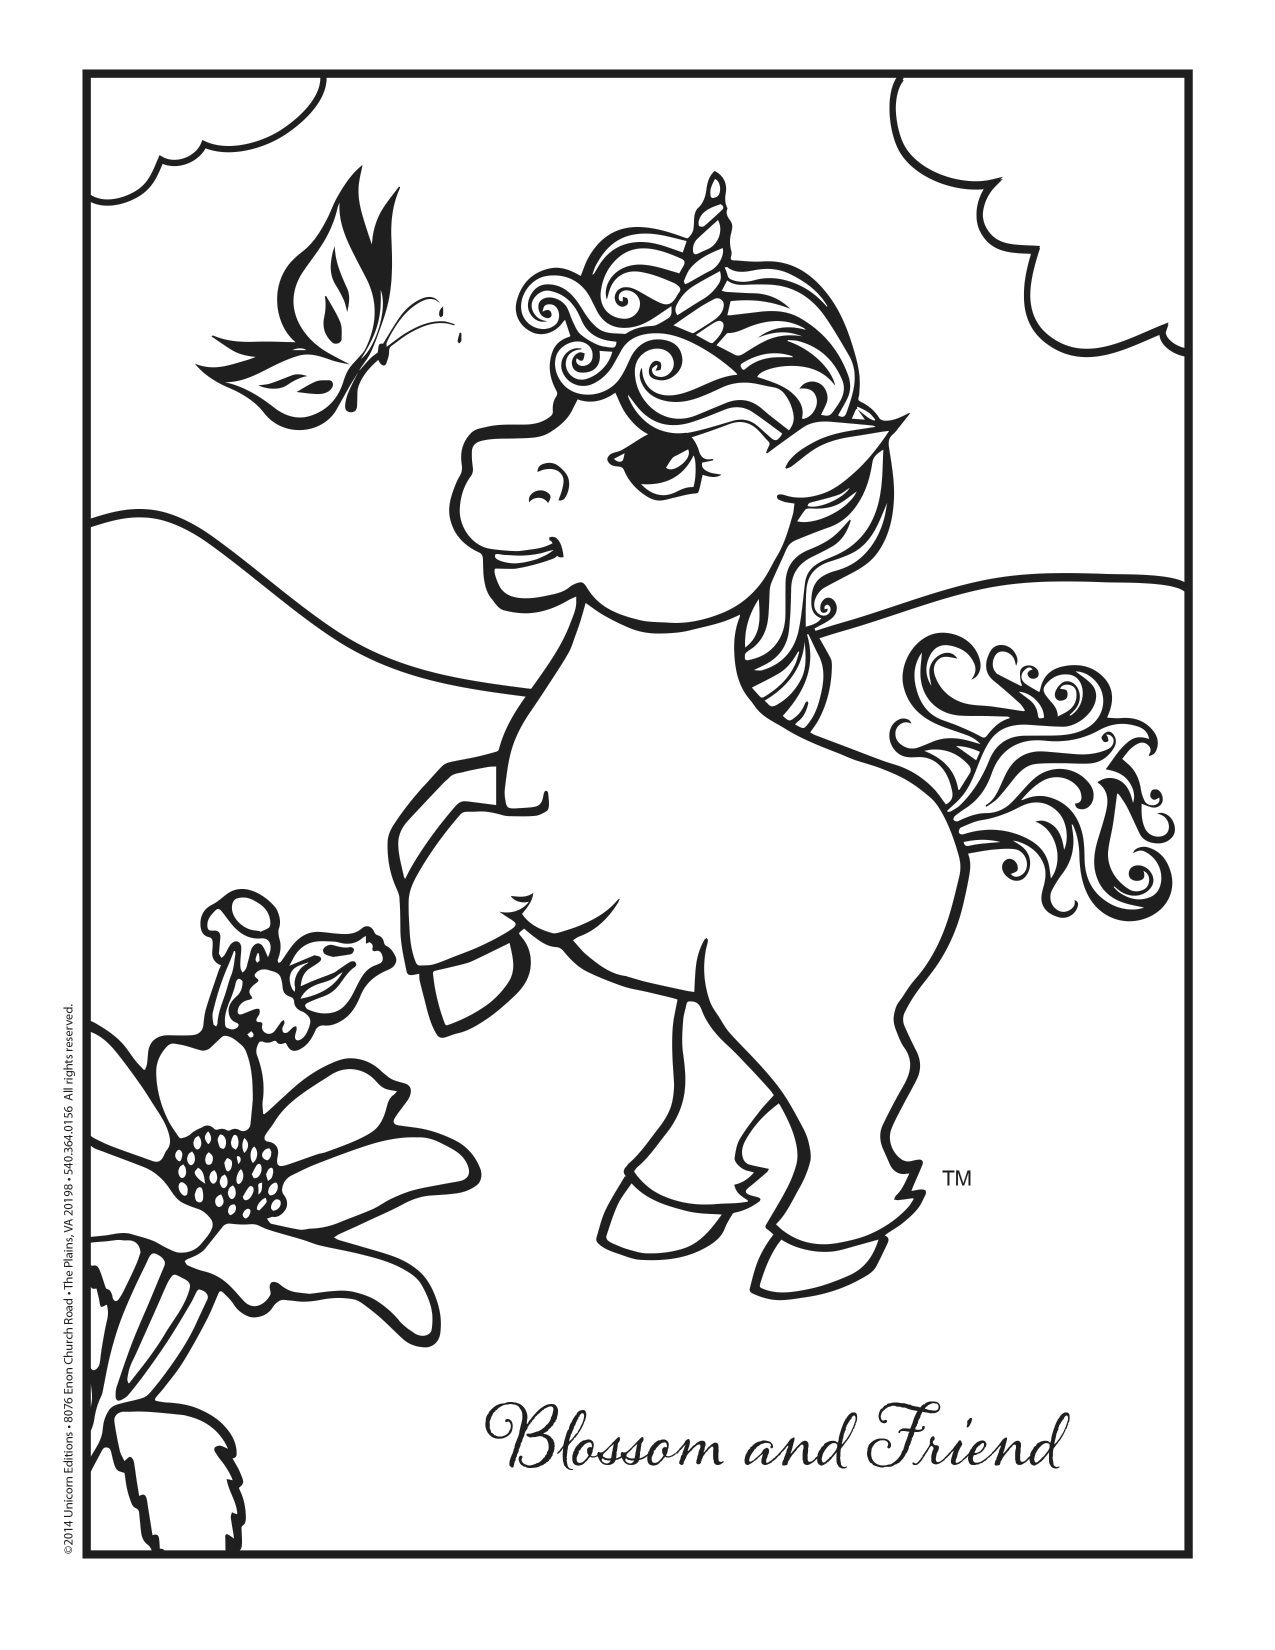 Blossom Loves To Play With Her Butterfly Friend Color The Butterfly With Bright Colors And The Pretty Baby Coloring Pages Coloring Pages Colorful Butterflies